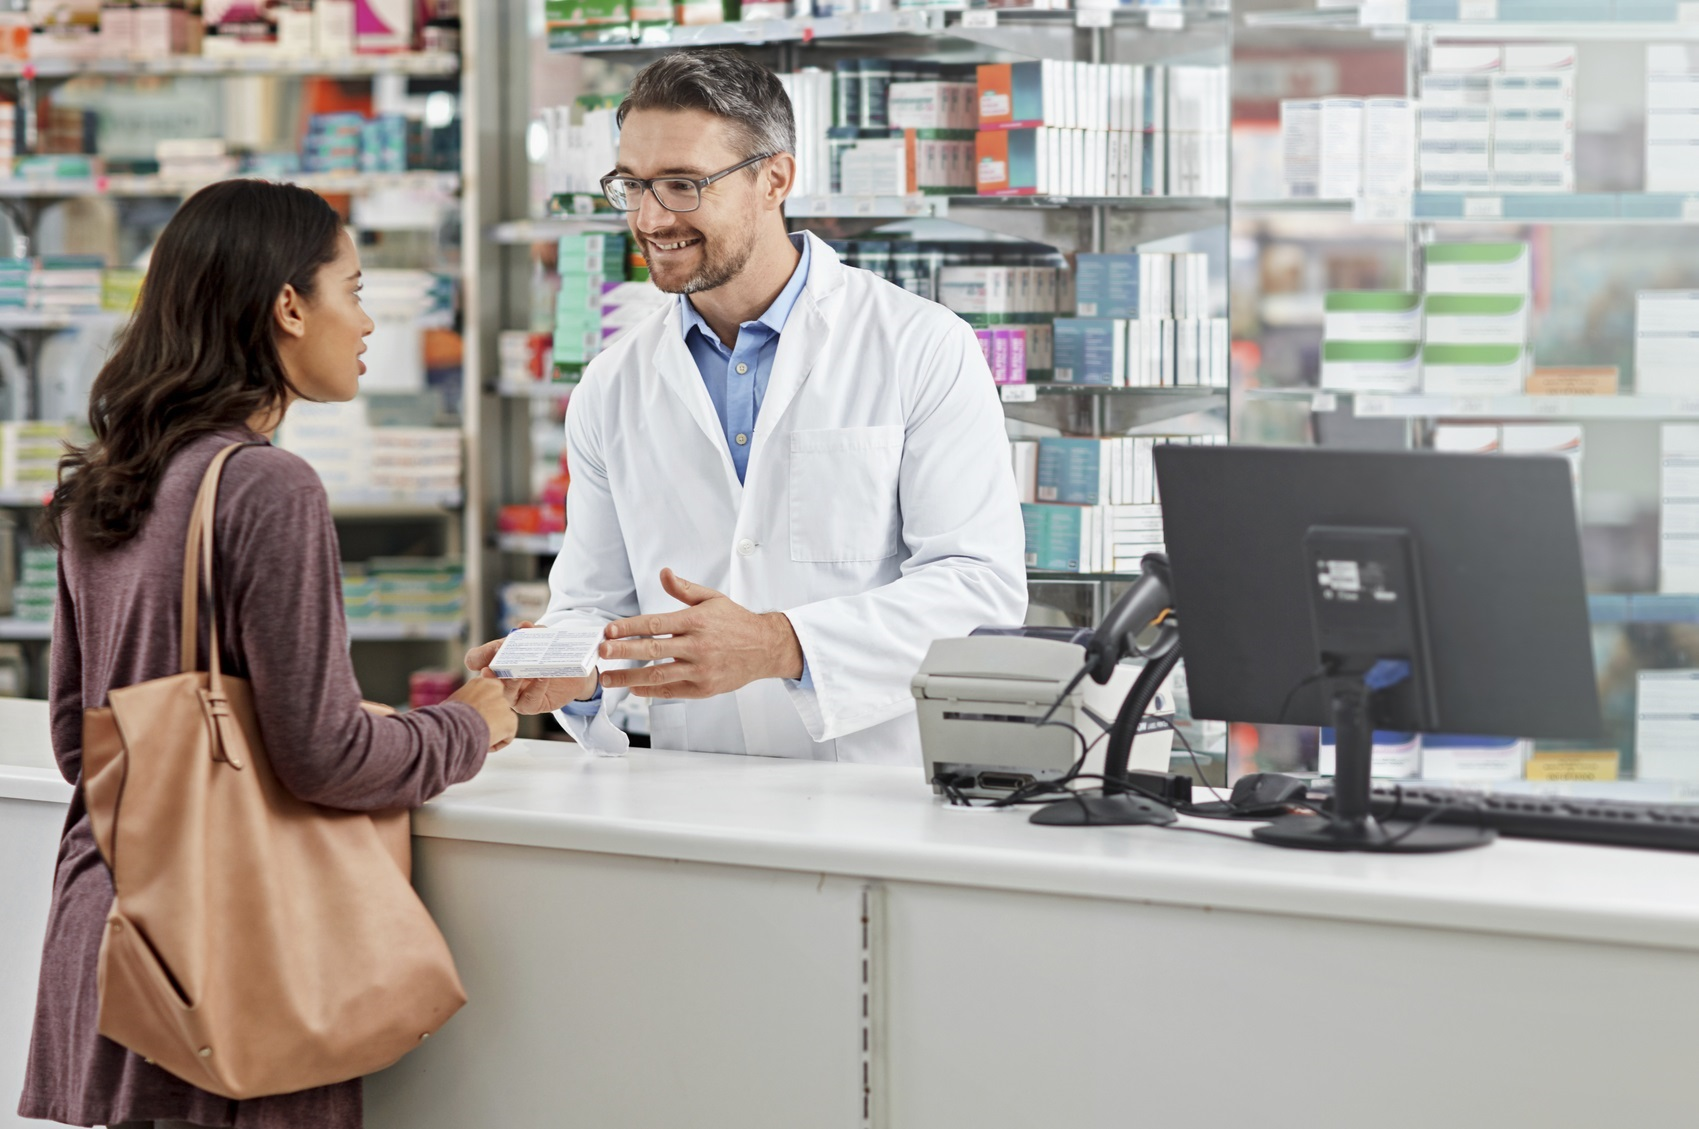 72 Abbreviations Every Pharmacy Tech Needs To Know